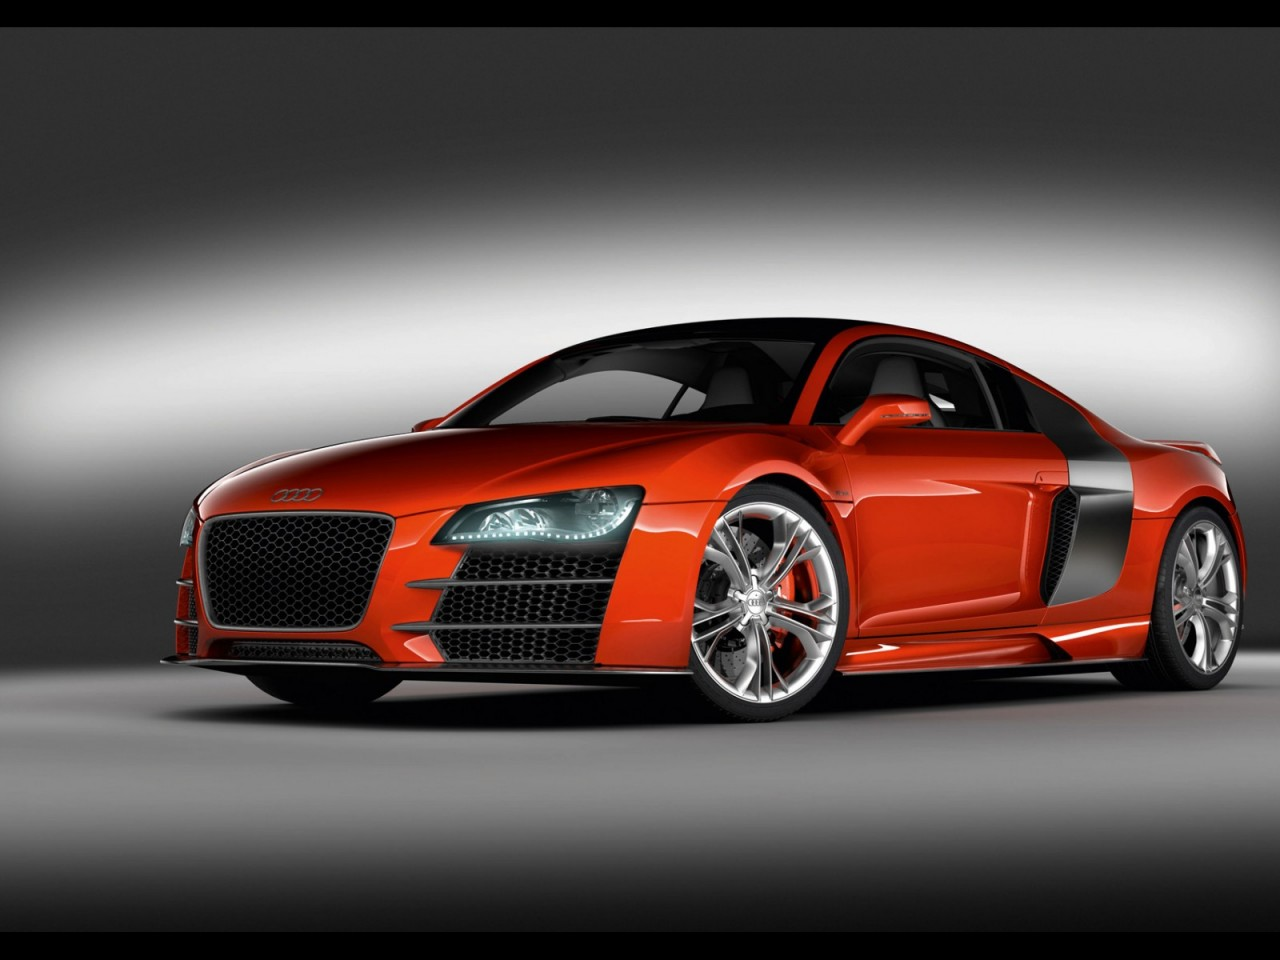 Cool Red Audi Sports Car Desktop Hd Wallpapers